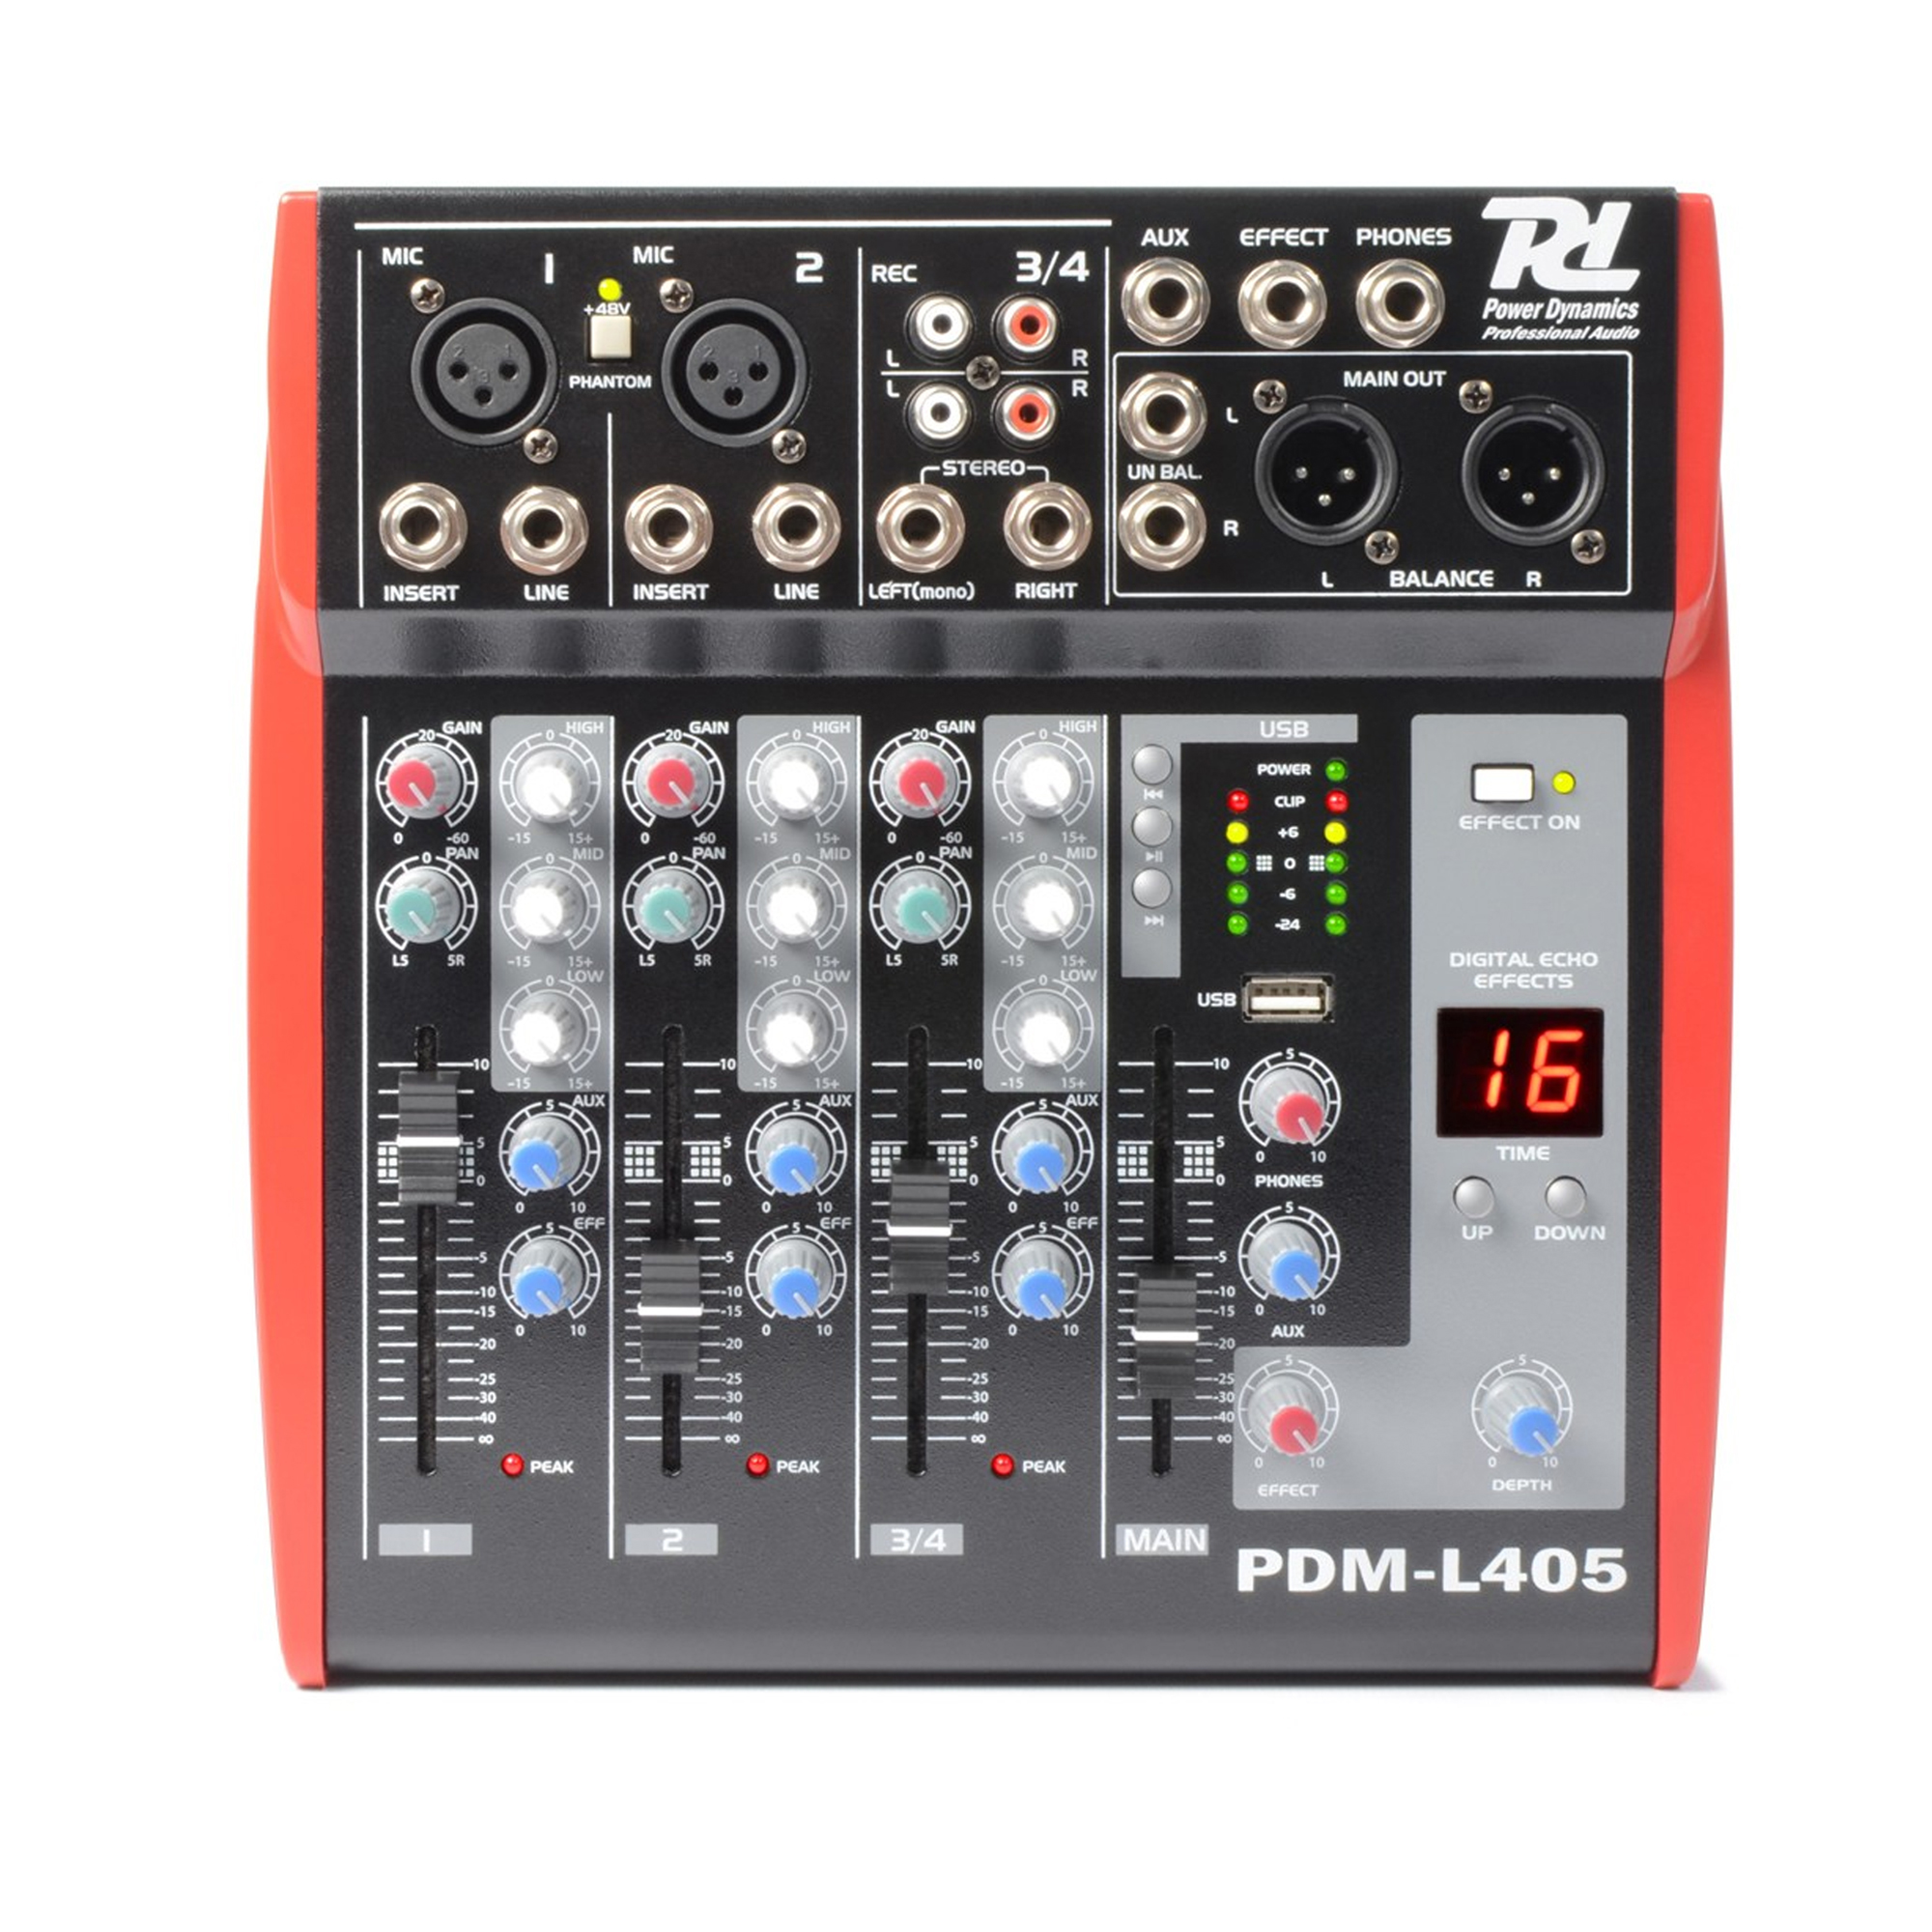 Power Dynamics PDM-L405 Music Mixer 4-Channel with MP3/ECHO